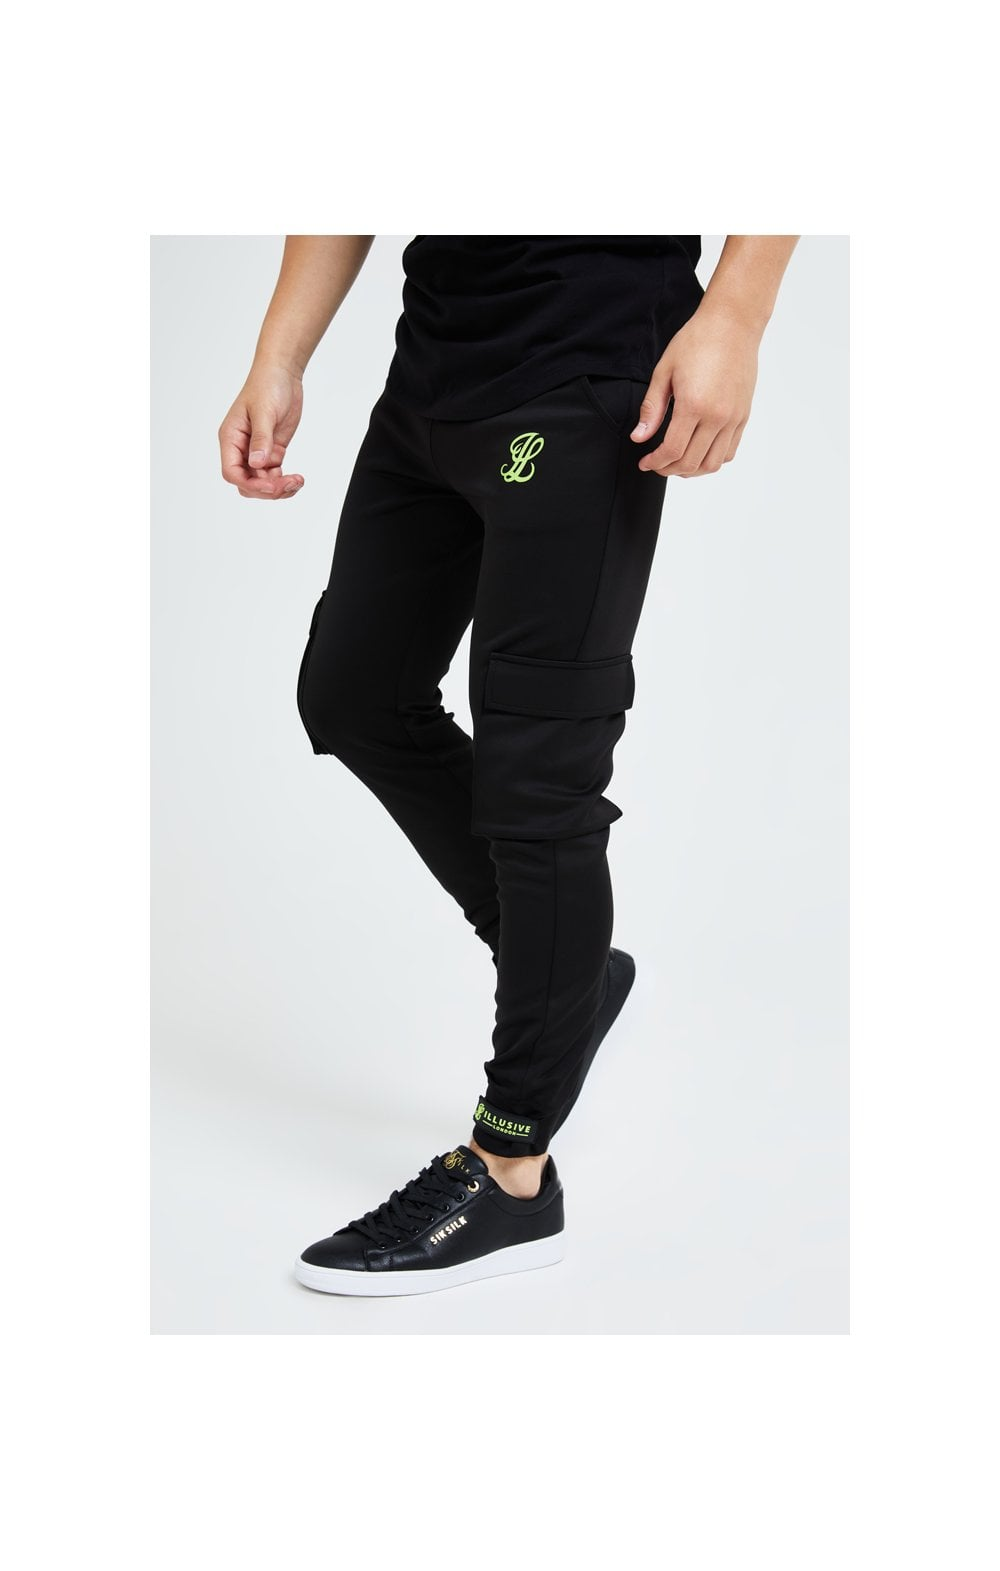 Illusive London Element Cargo Joggers - Black & Green